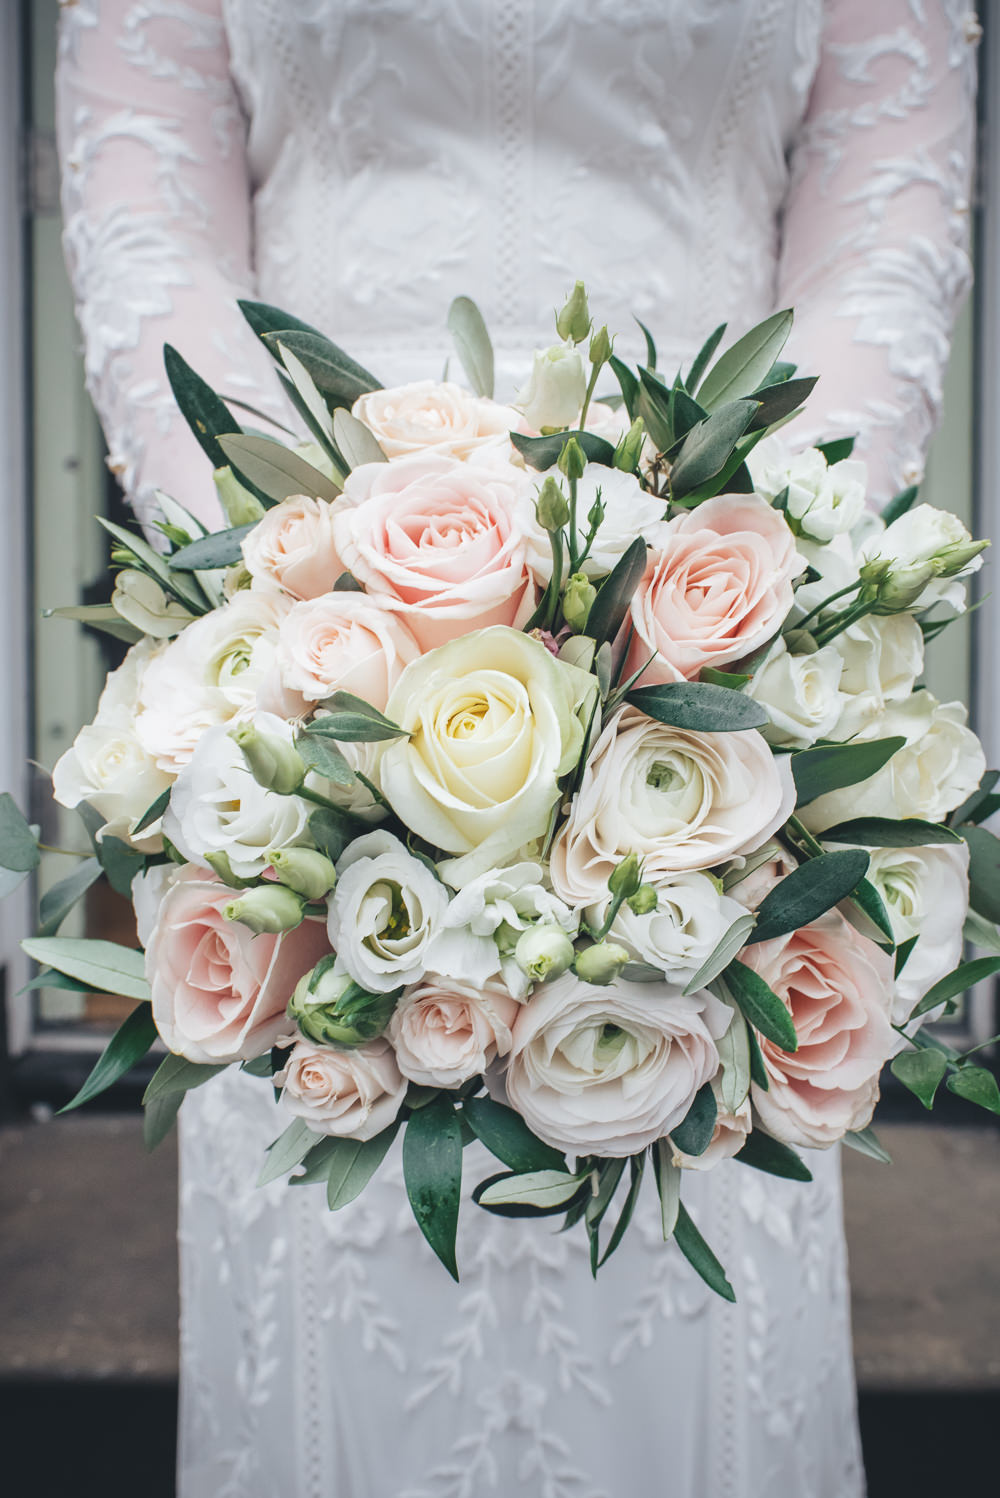 Bride Bridal Bouquet Pink Cream Roses Greenery Foliage 60 Hope Street Wedding Lisa Howard Photography